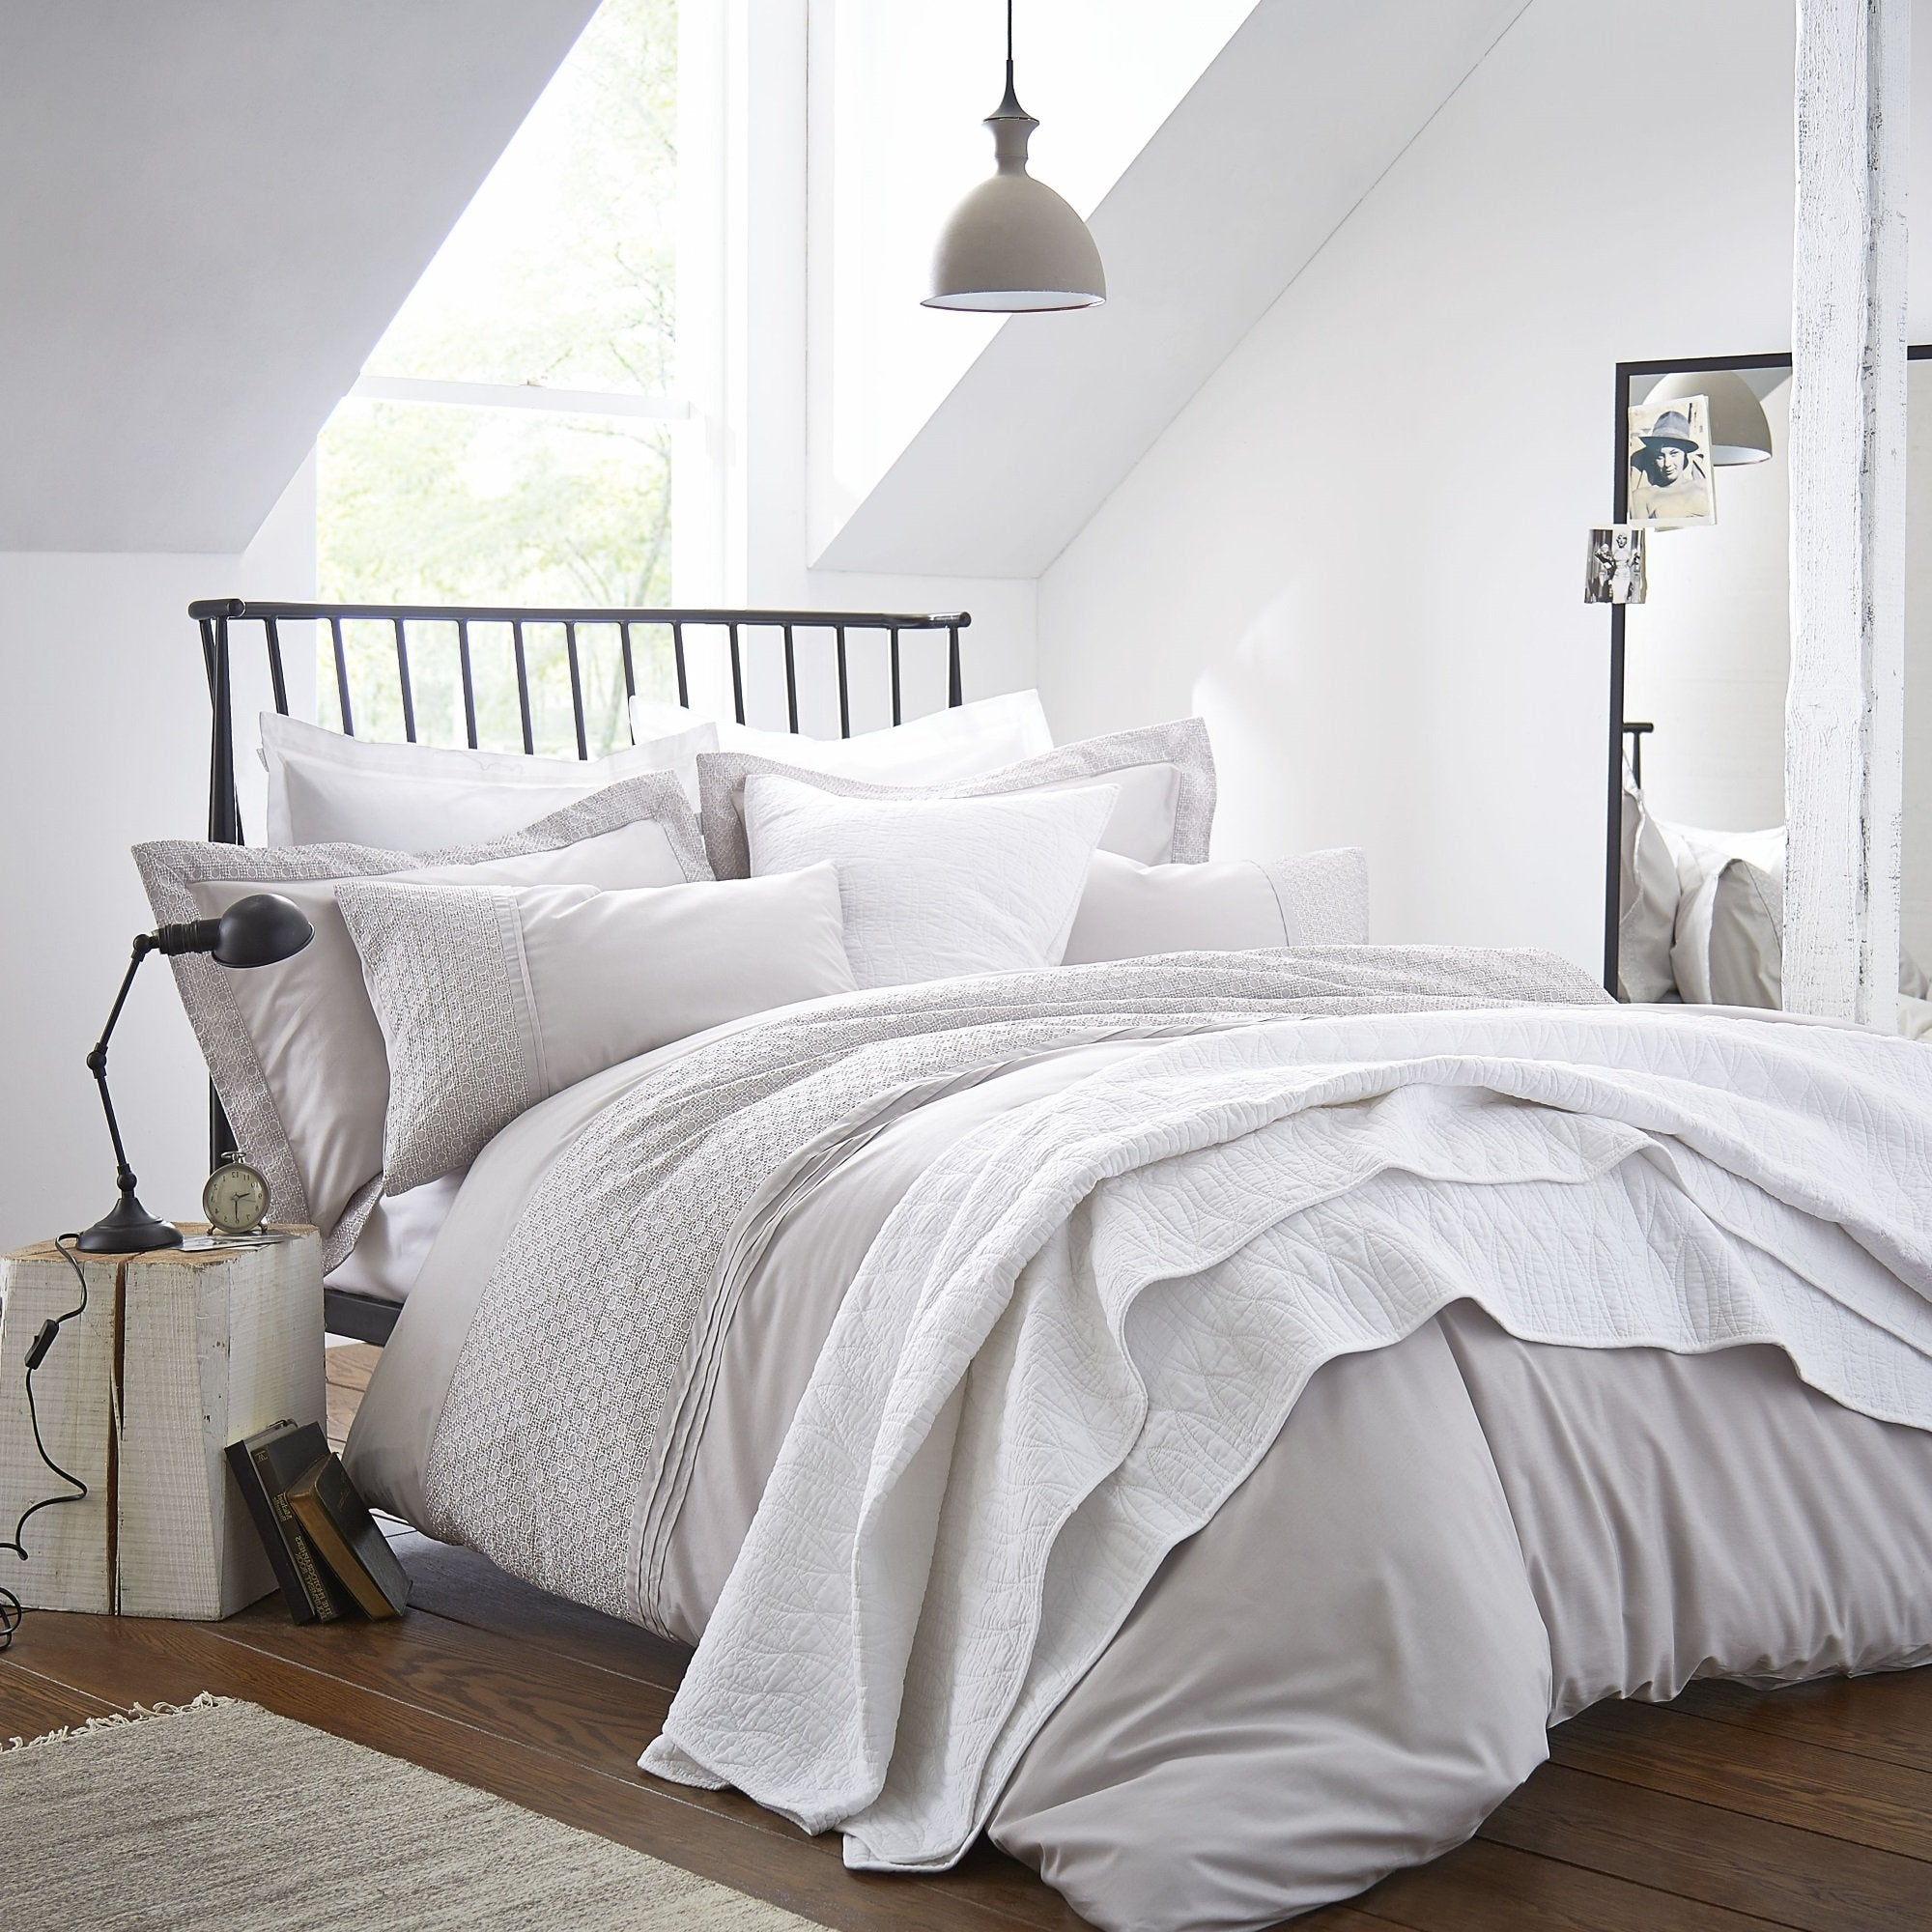 Cotton Casa Embroidered Heaven Grey Duvet Cover